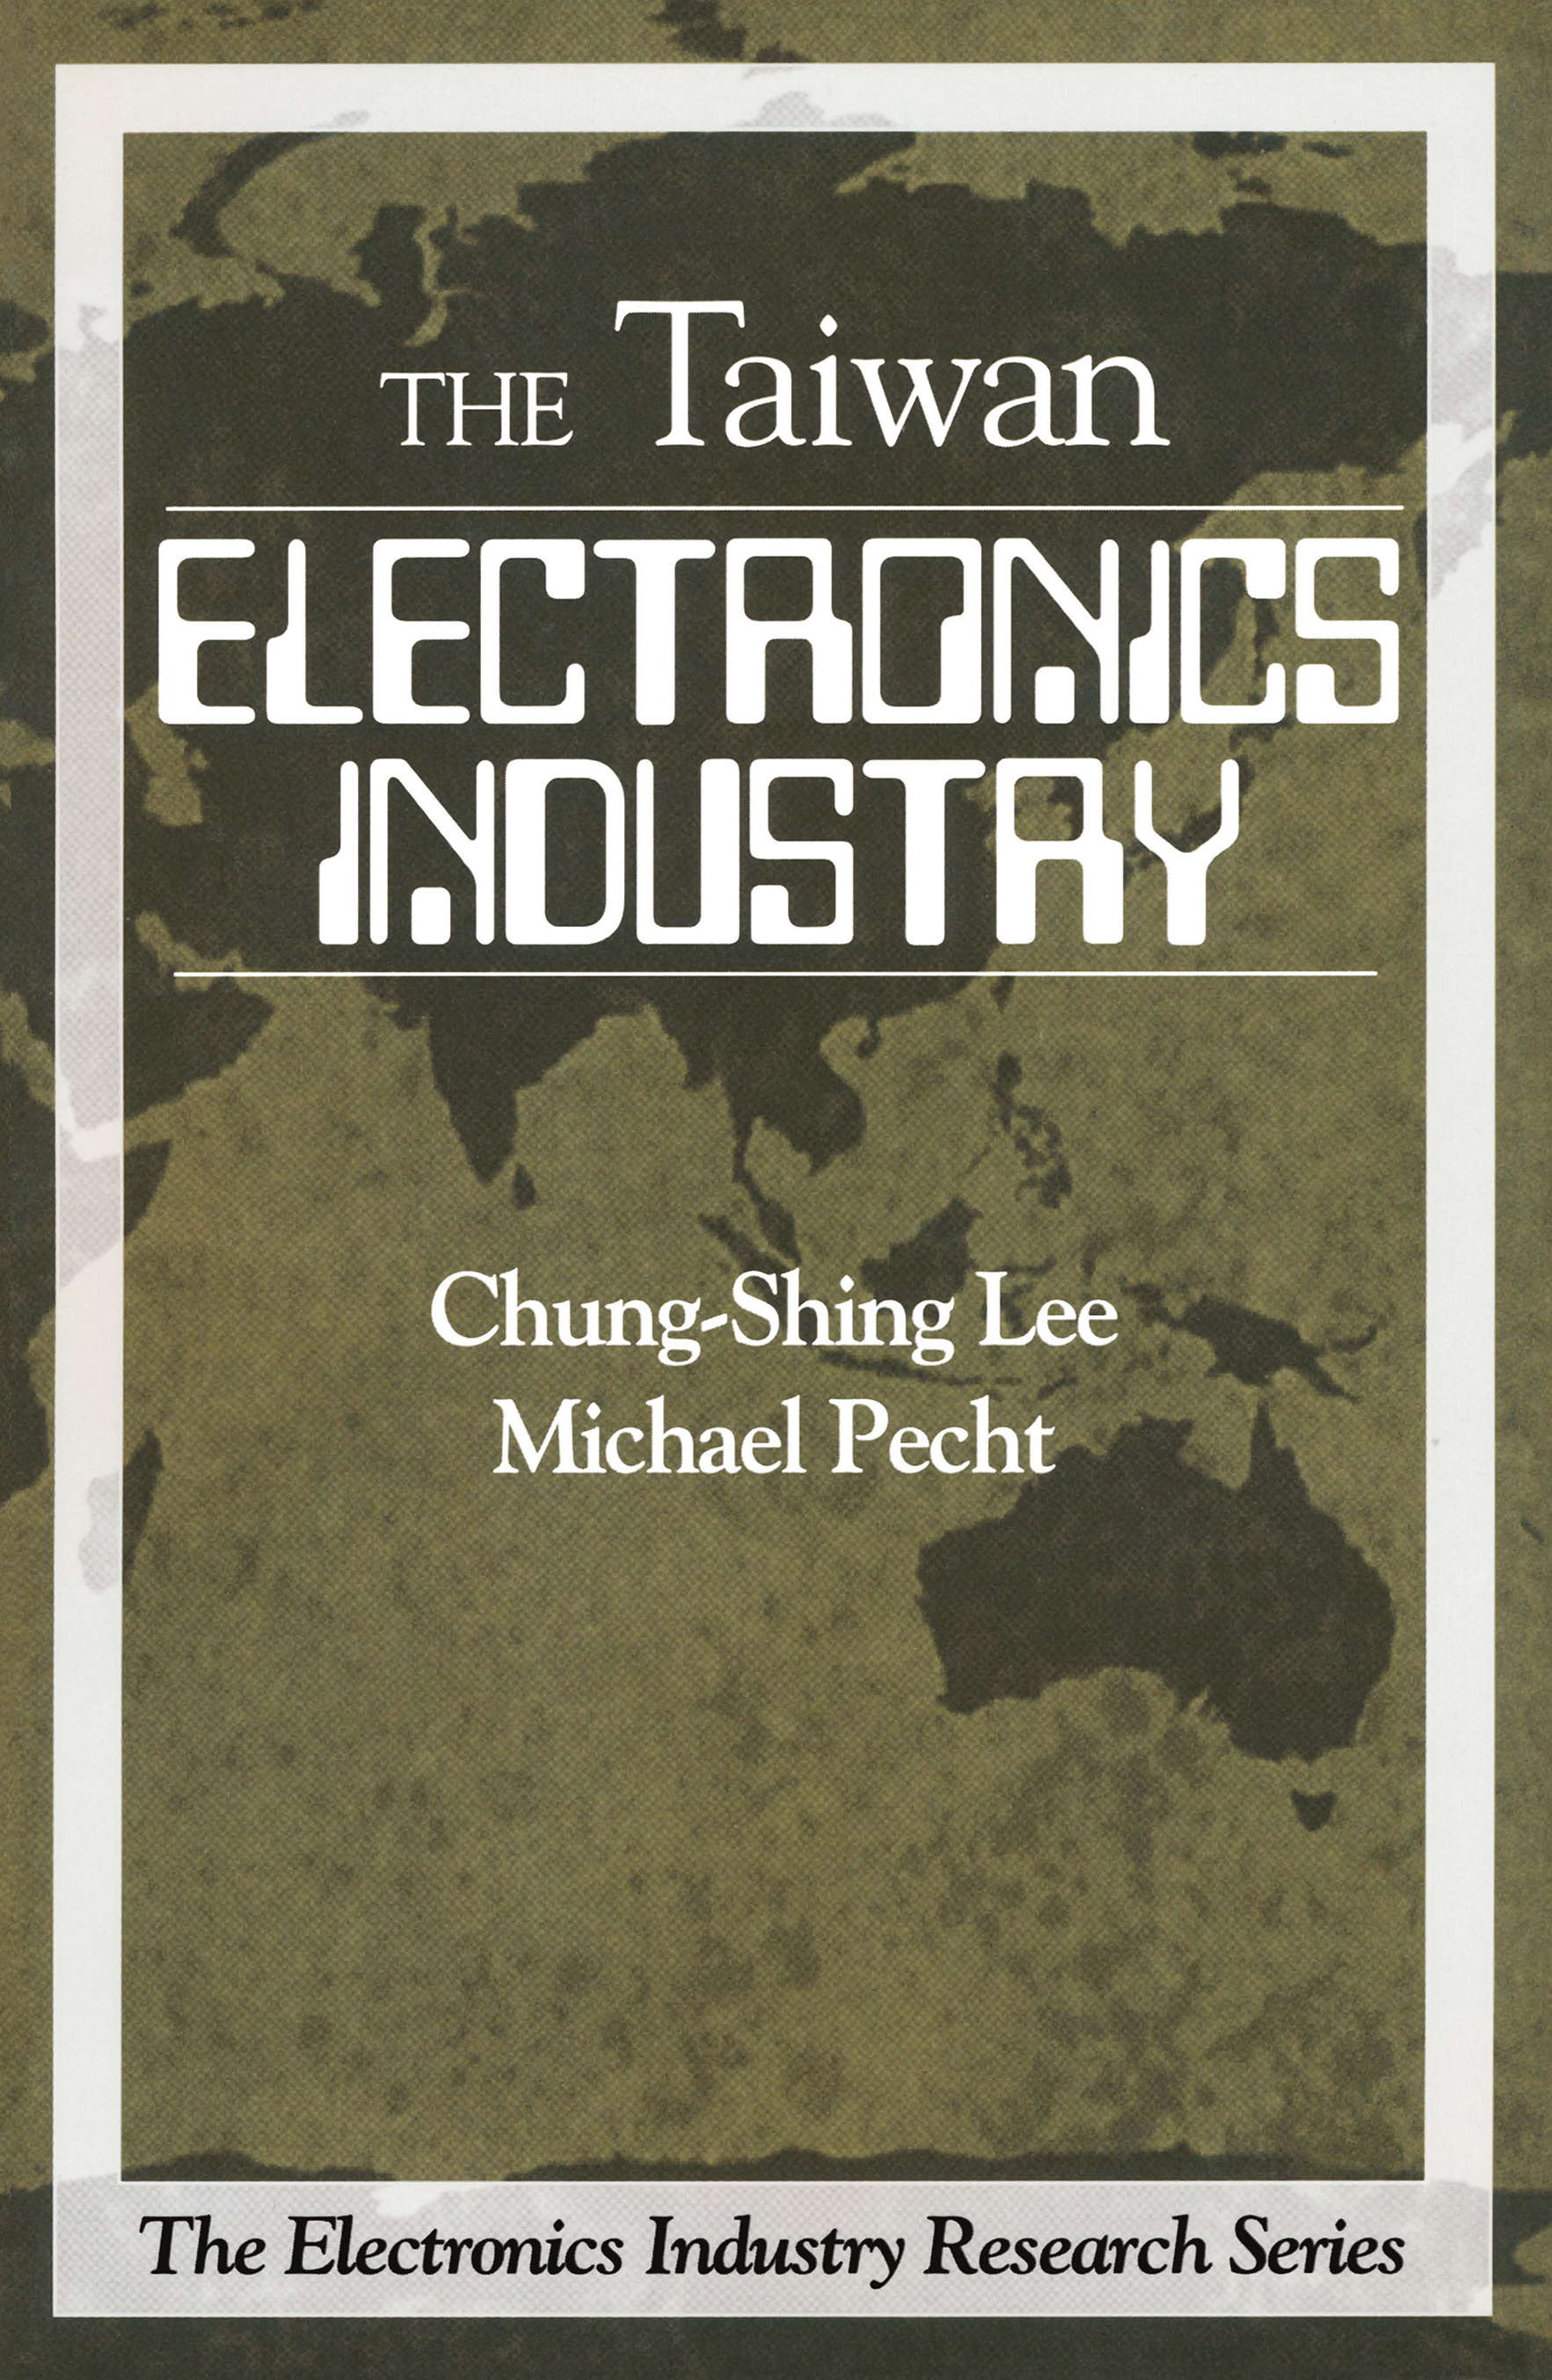 The Taiwan Electronics Industry